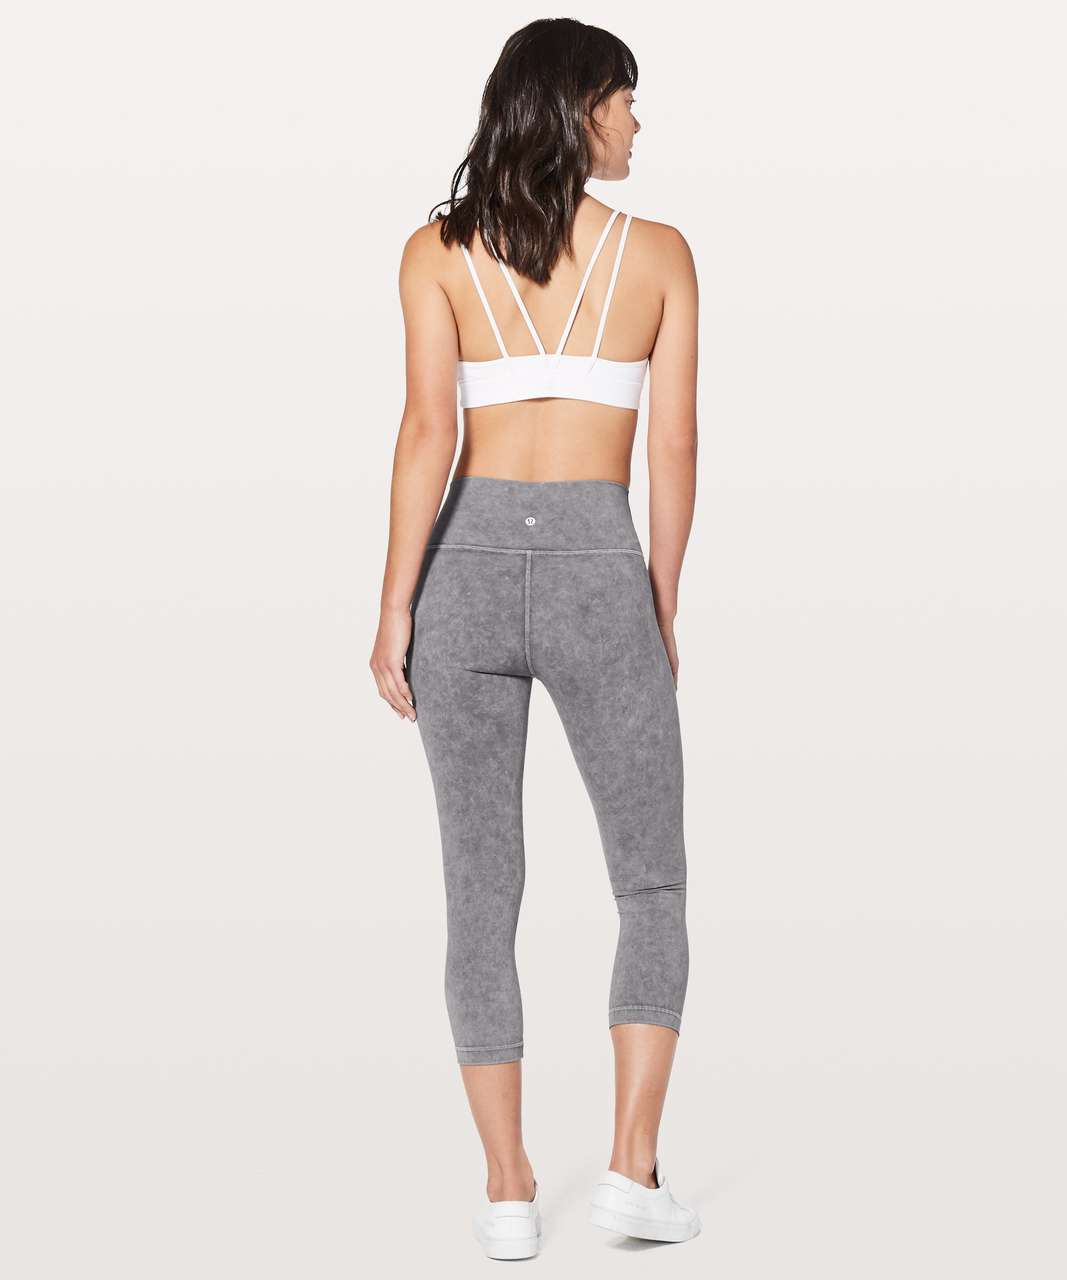 "Lululemon Wunder Under Crop (Hi-Rise) *21"" - Washed Luna"